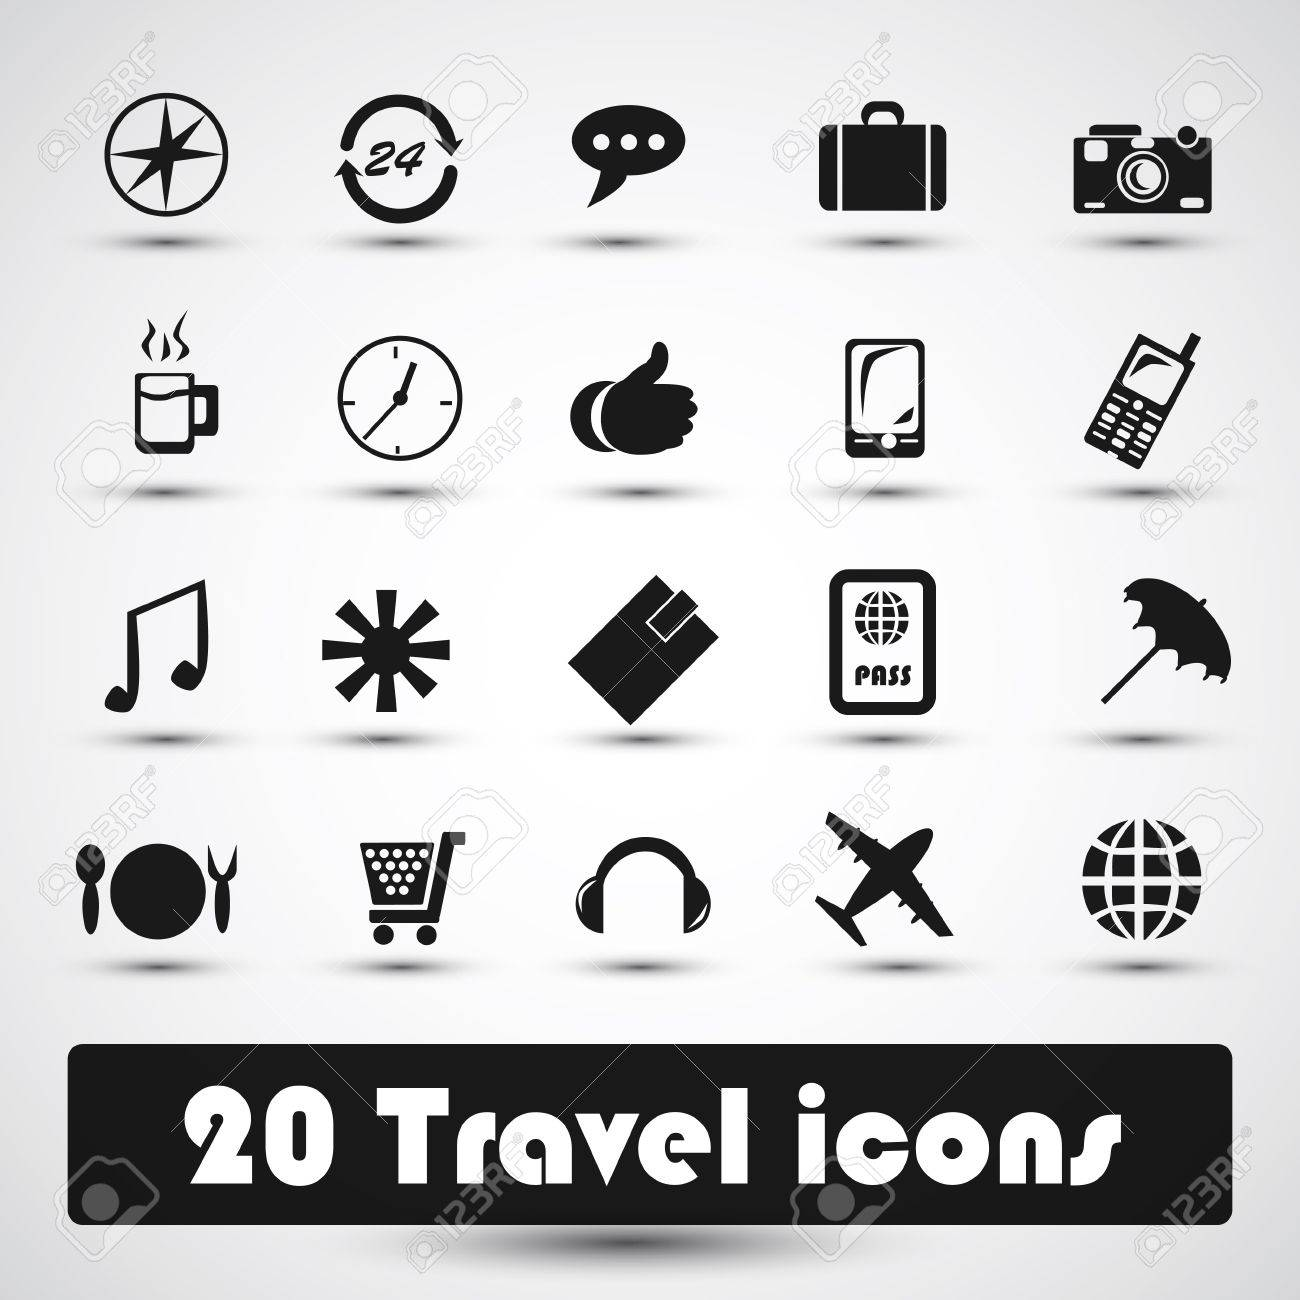 20 travel icon with gray Stock Vector - 16937788